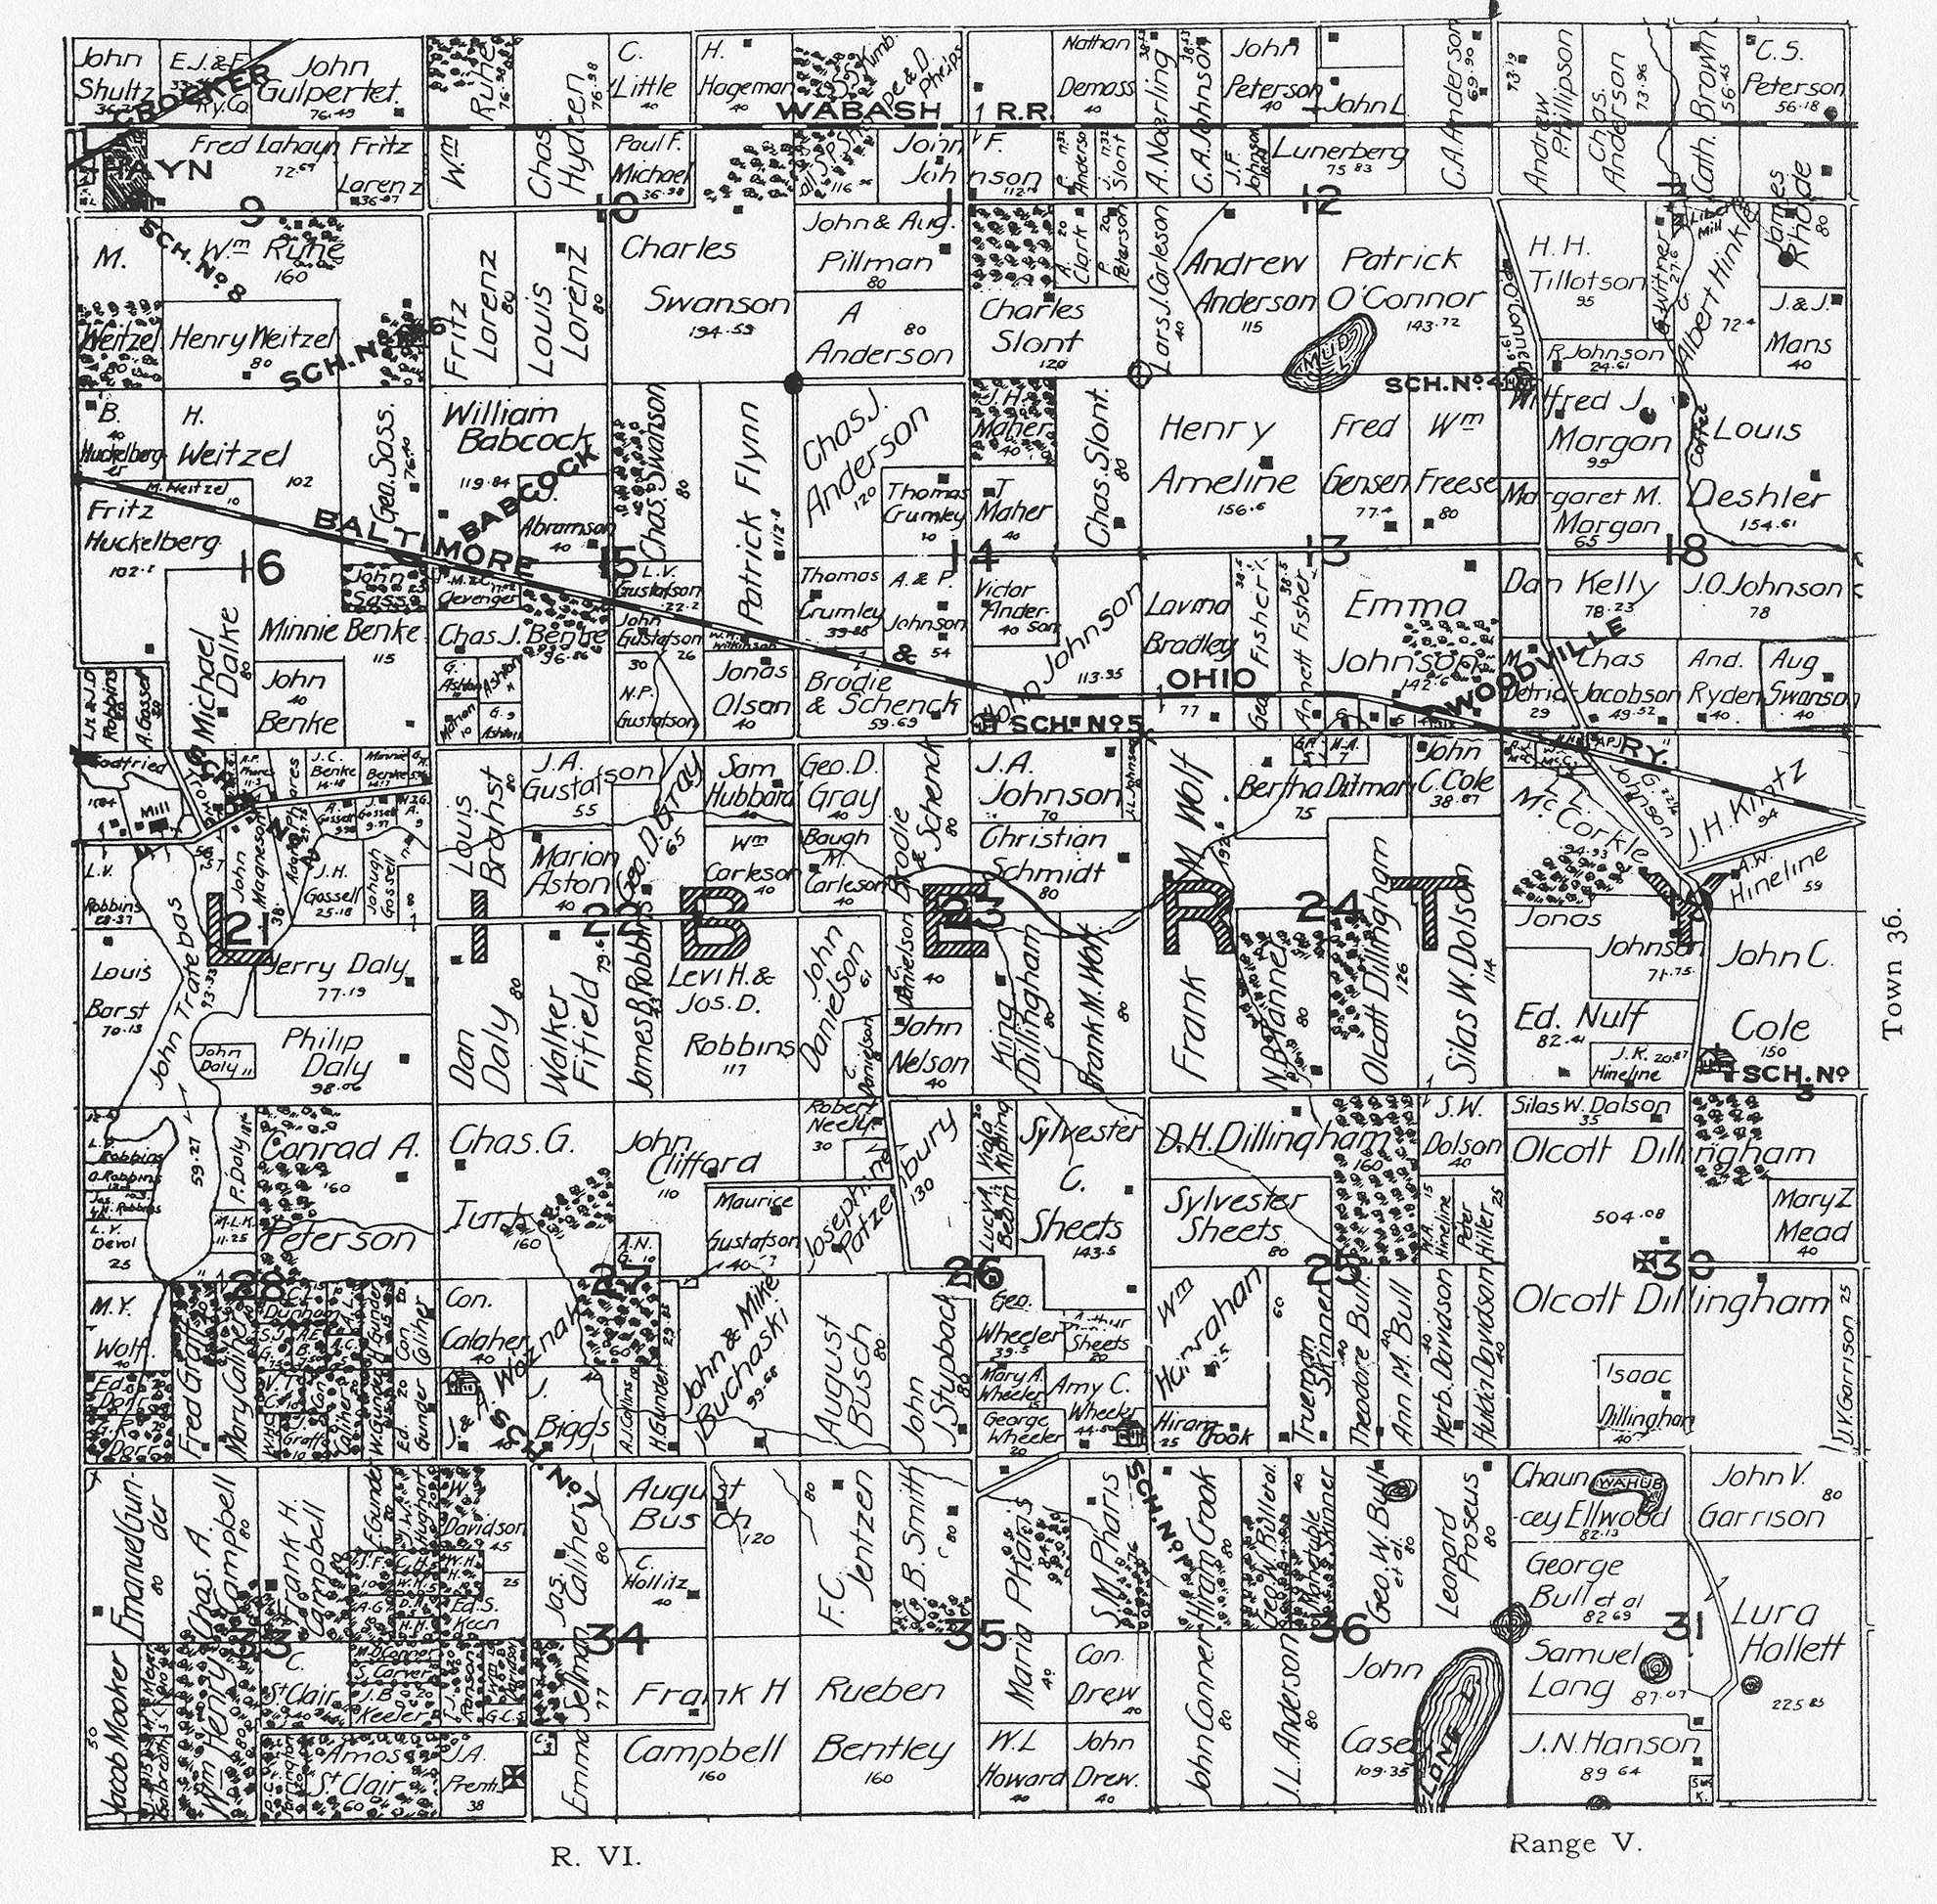 Porter County Indiana Genweb Township Plat Maps 1895